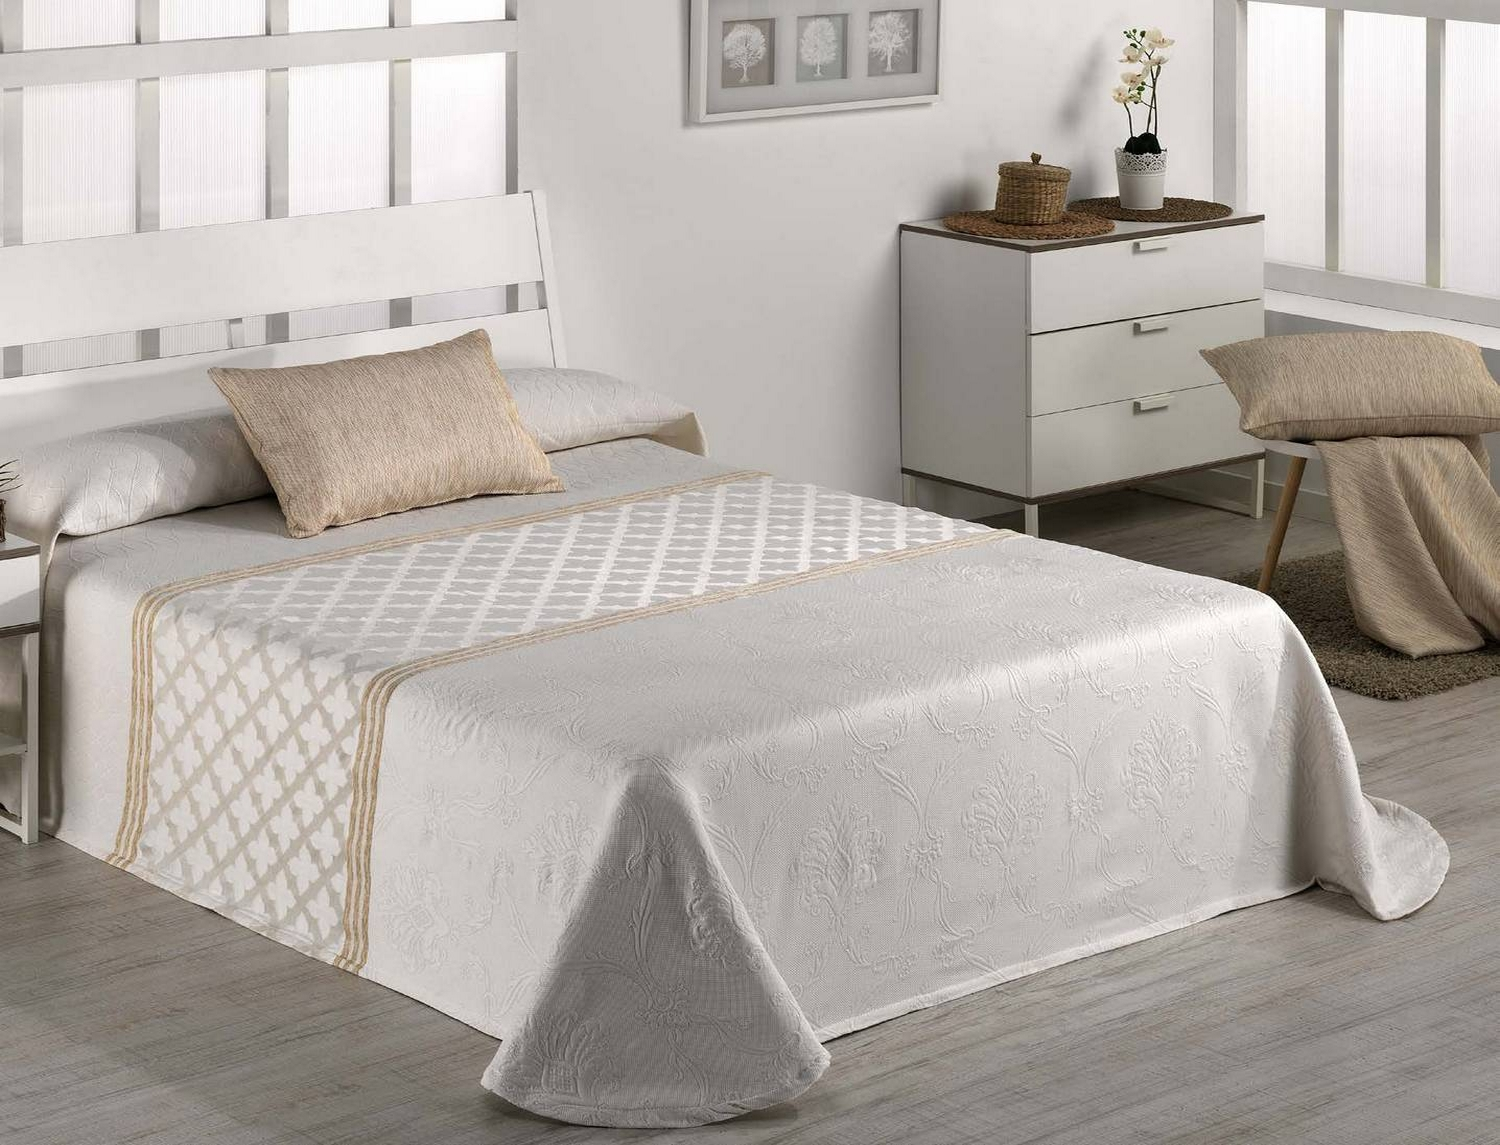 Barbadella Home Colcha Capa Jacquard Valley